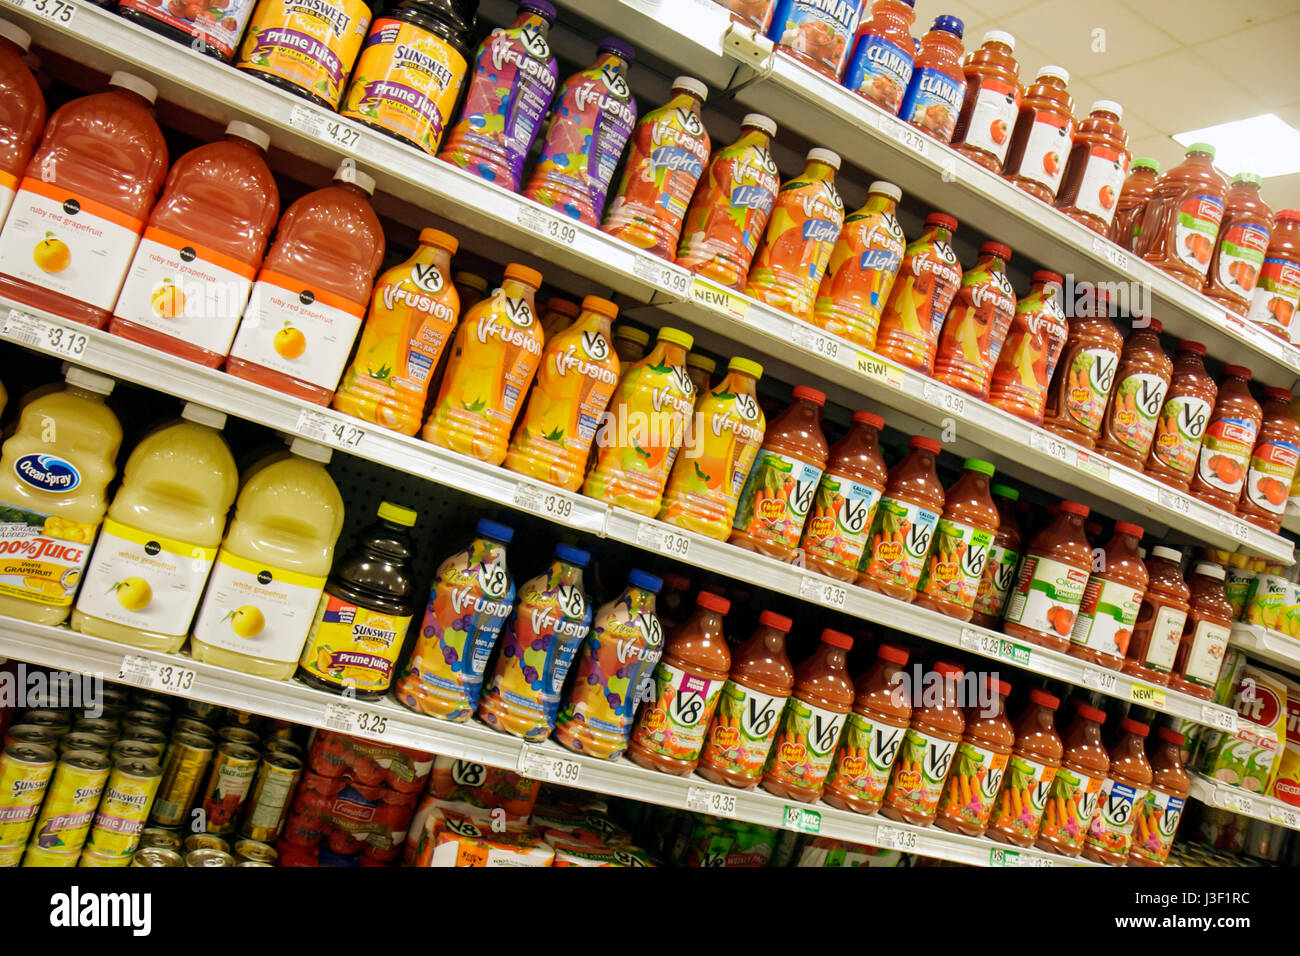 Indian Grocery Miami Beach